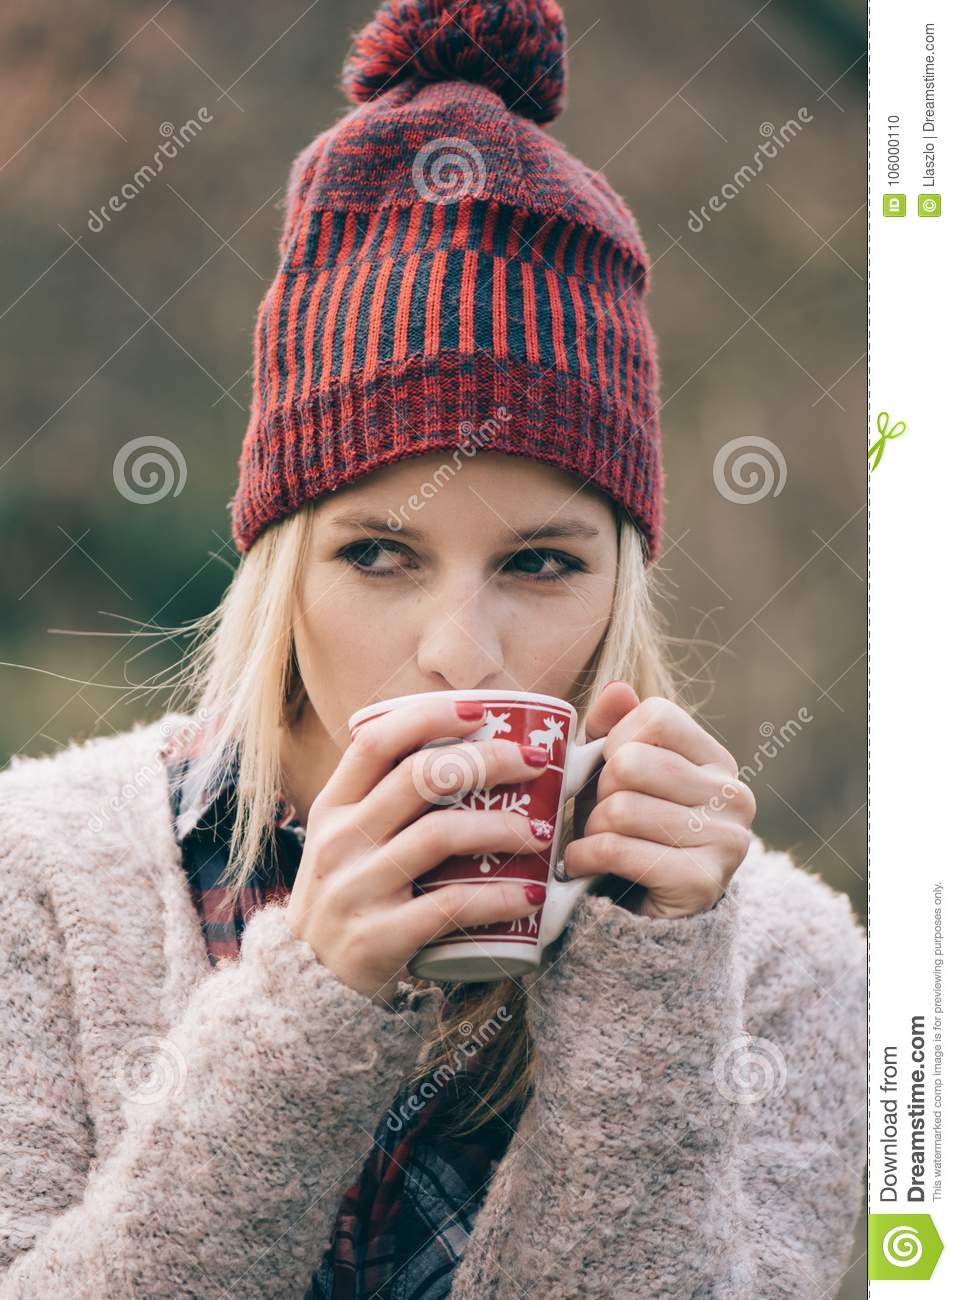 0d32e85776b Girl Drinking Hot Drink Outdoor. Coffee Or Drink In Mug. Stock Photo ...